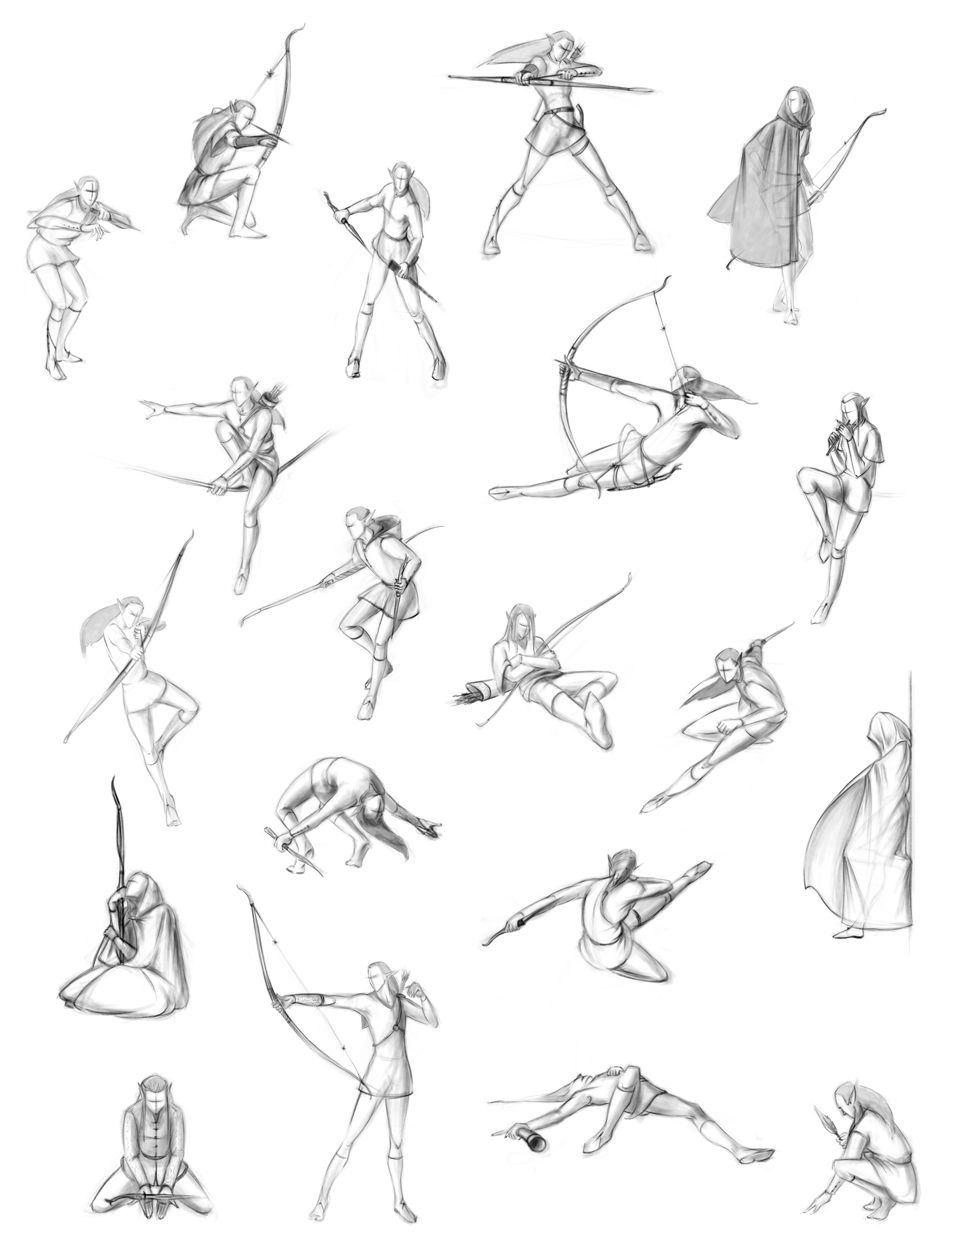 Archer in various poses